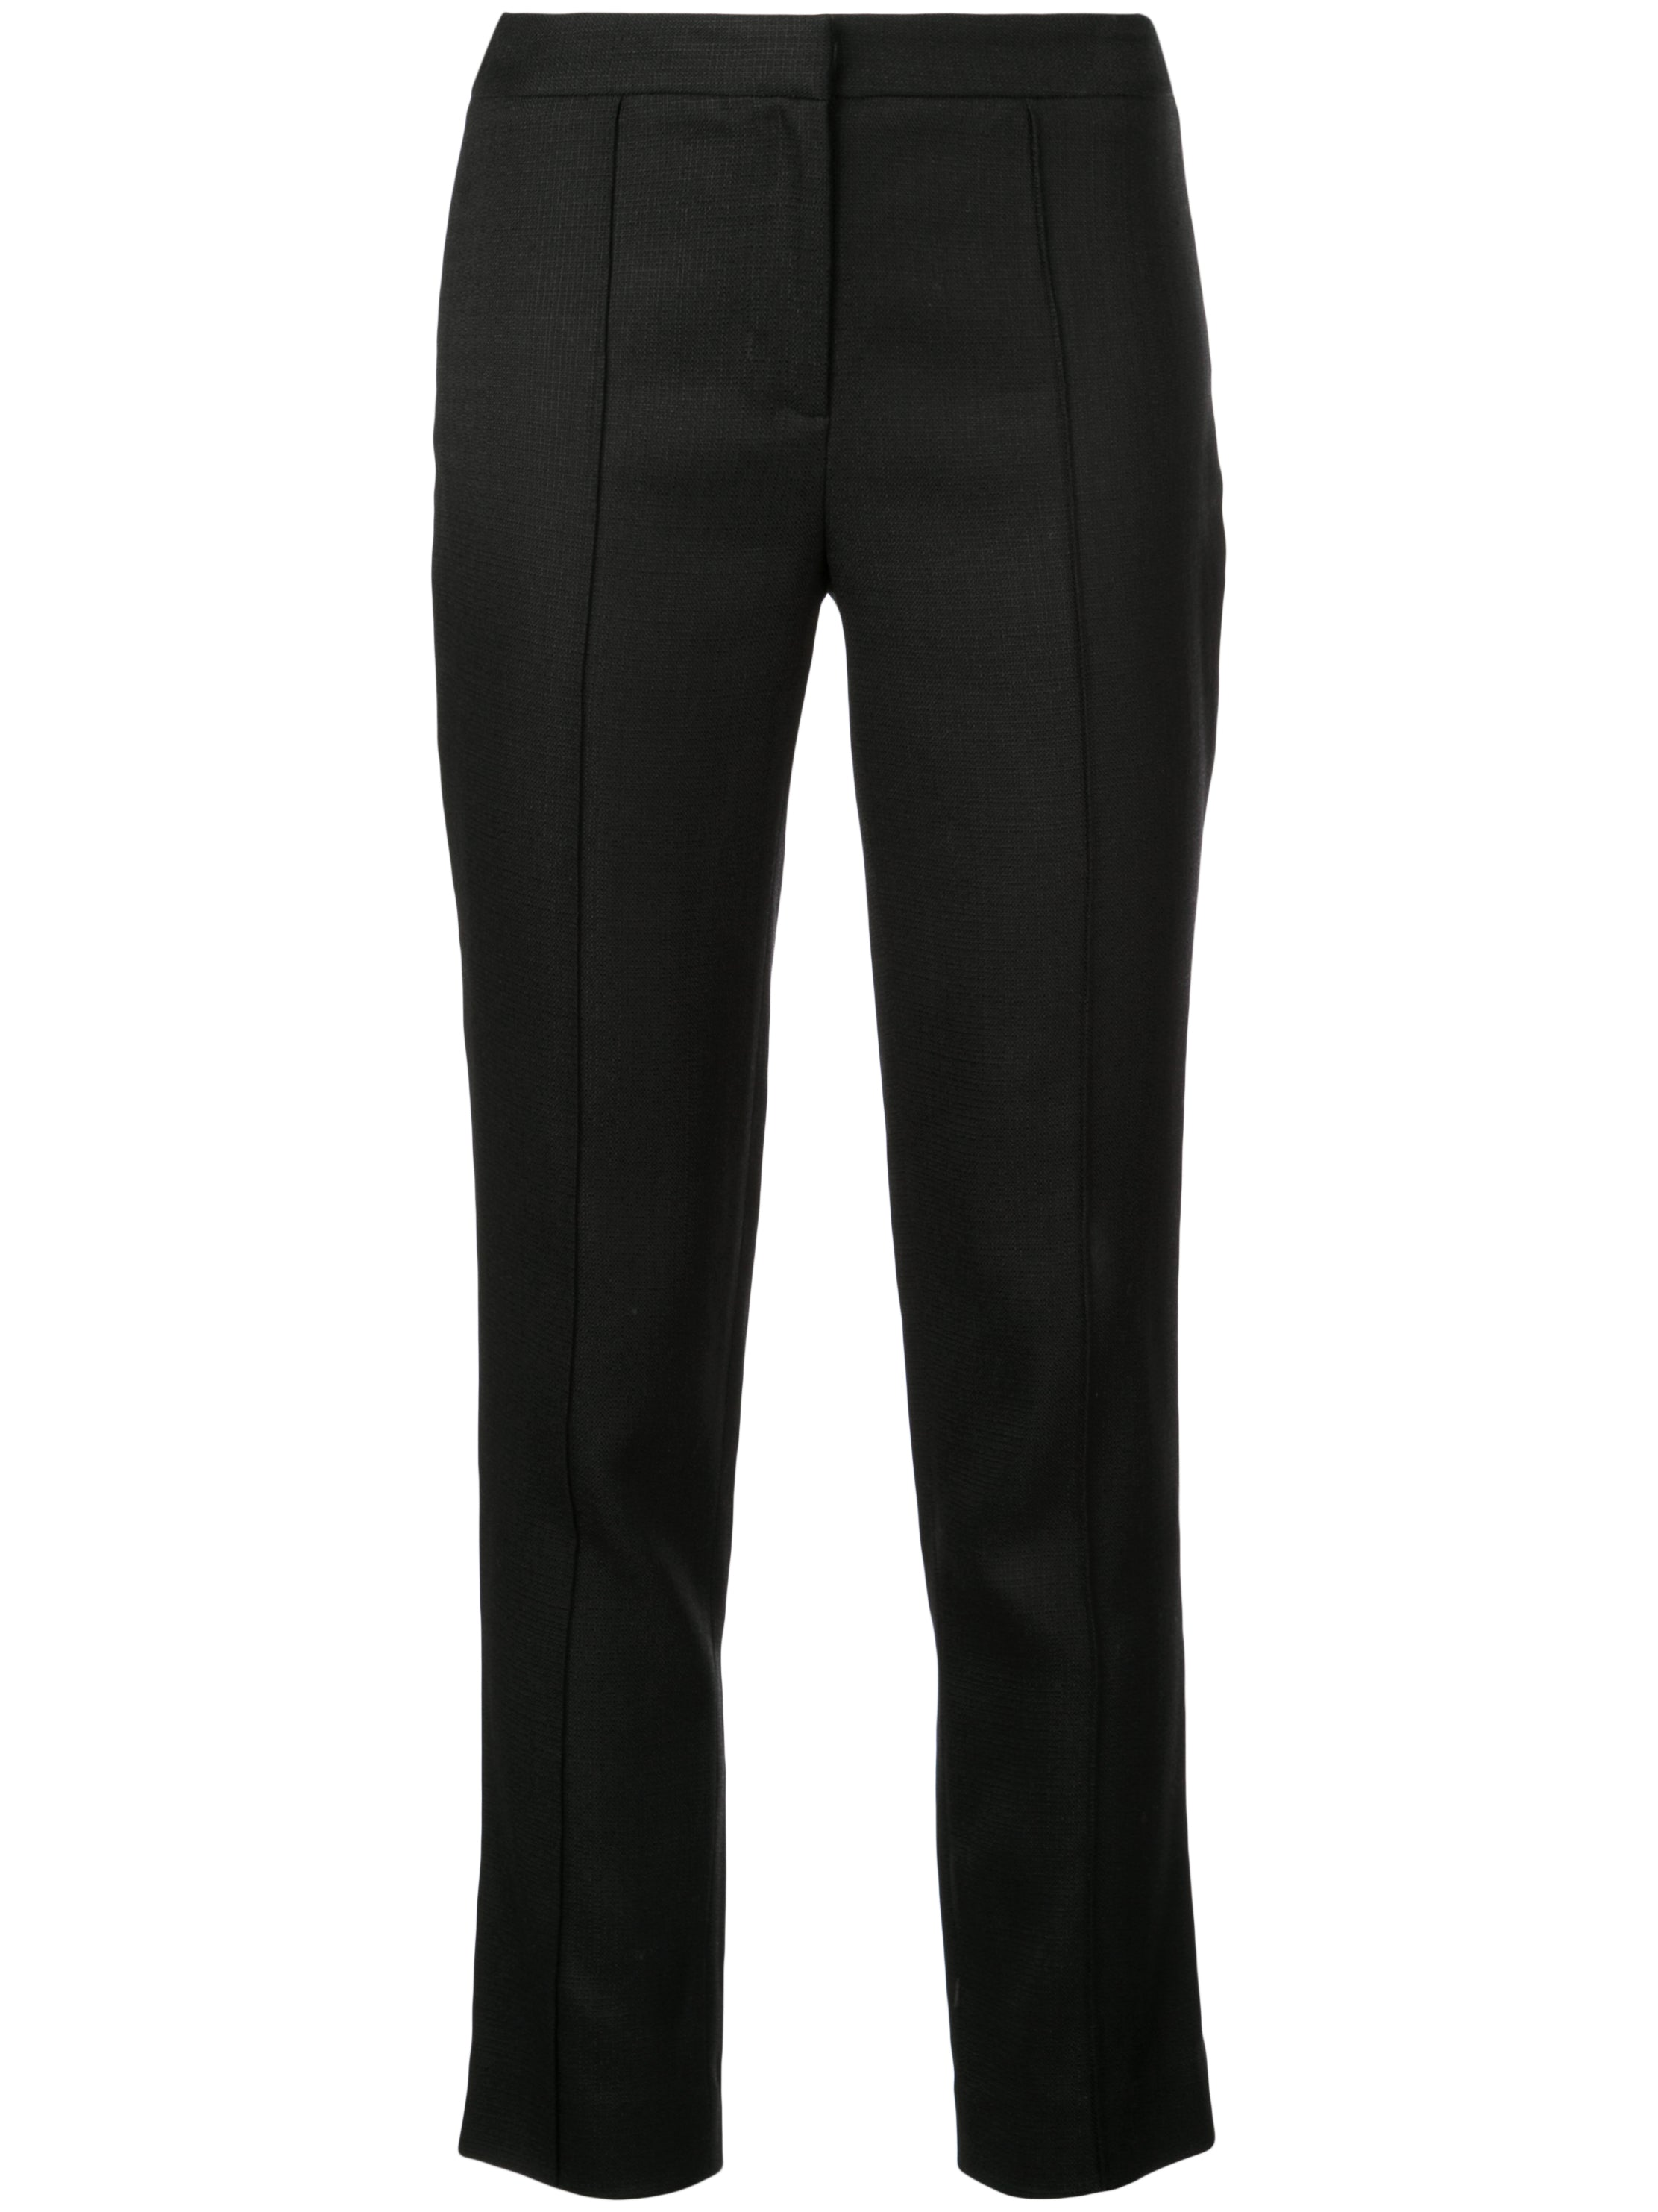 STRETCH CANVAS CIGARETTE PANT WITH PINTUCK